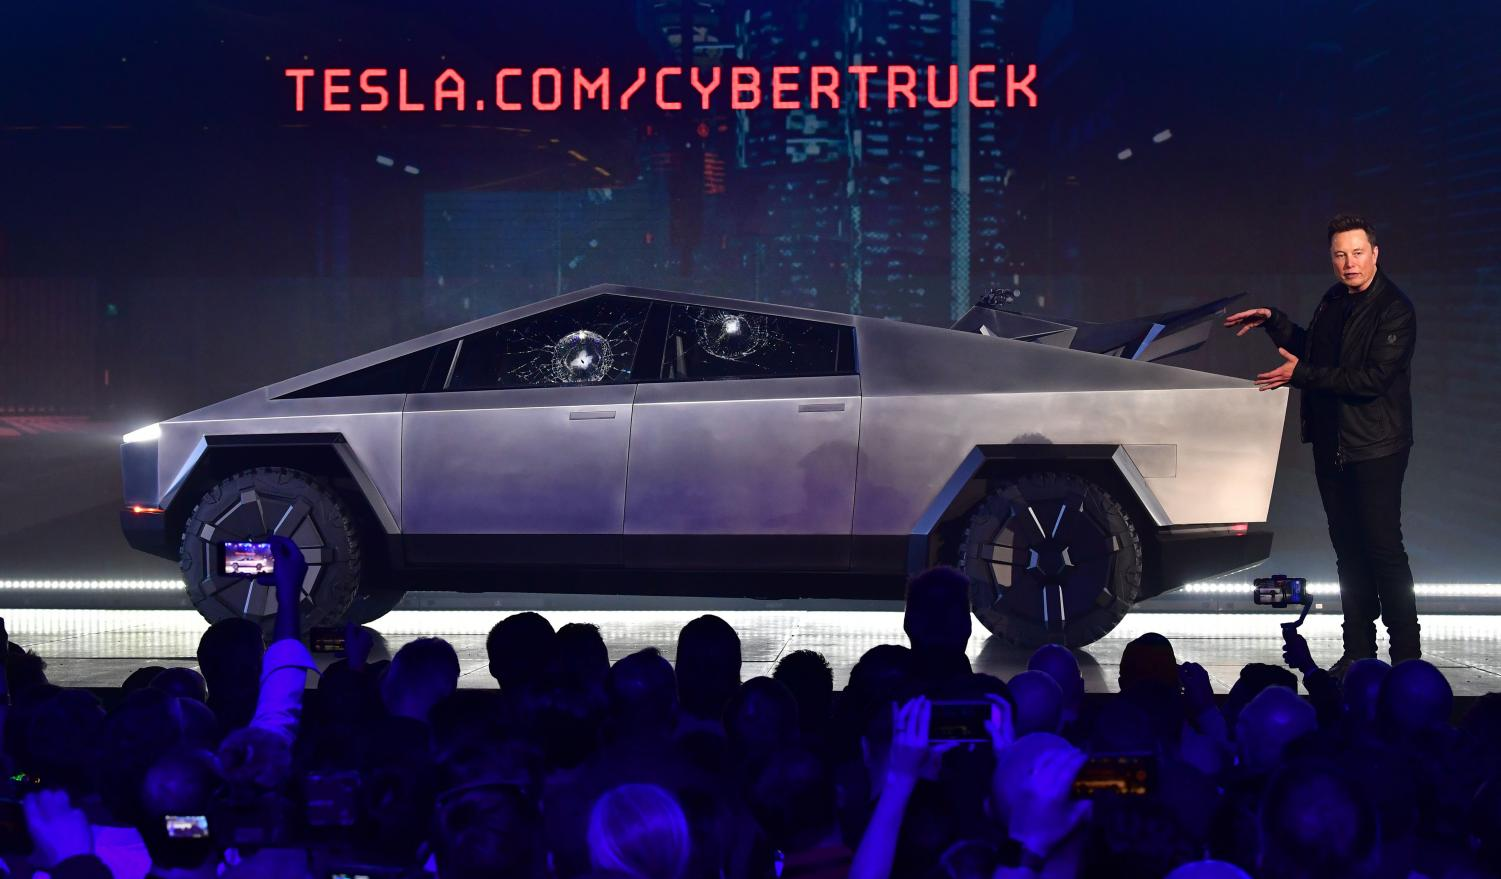 Tesla co-founder and CEO Elon Musk gestures while wrapping up his presentation of the newly unveiled all-electric battery-powered Tesla Cybertruck at Tesla Design Center on Nov. 21, 2019 in Hawthorne, Calif.